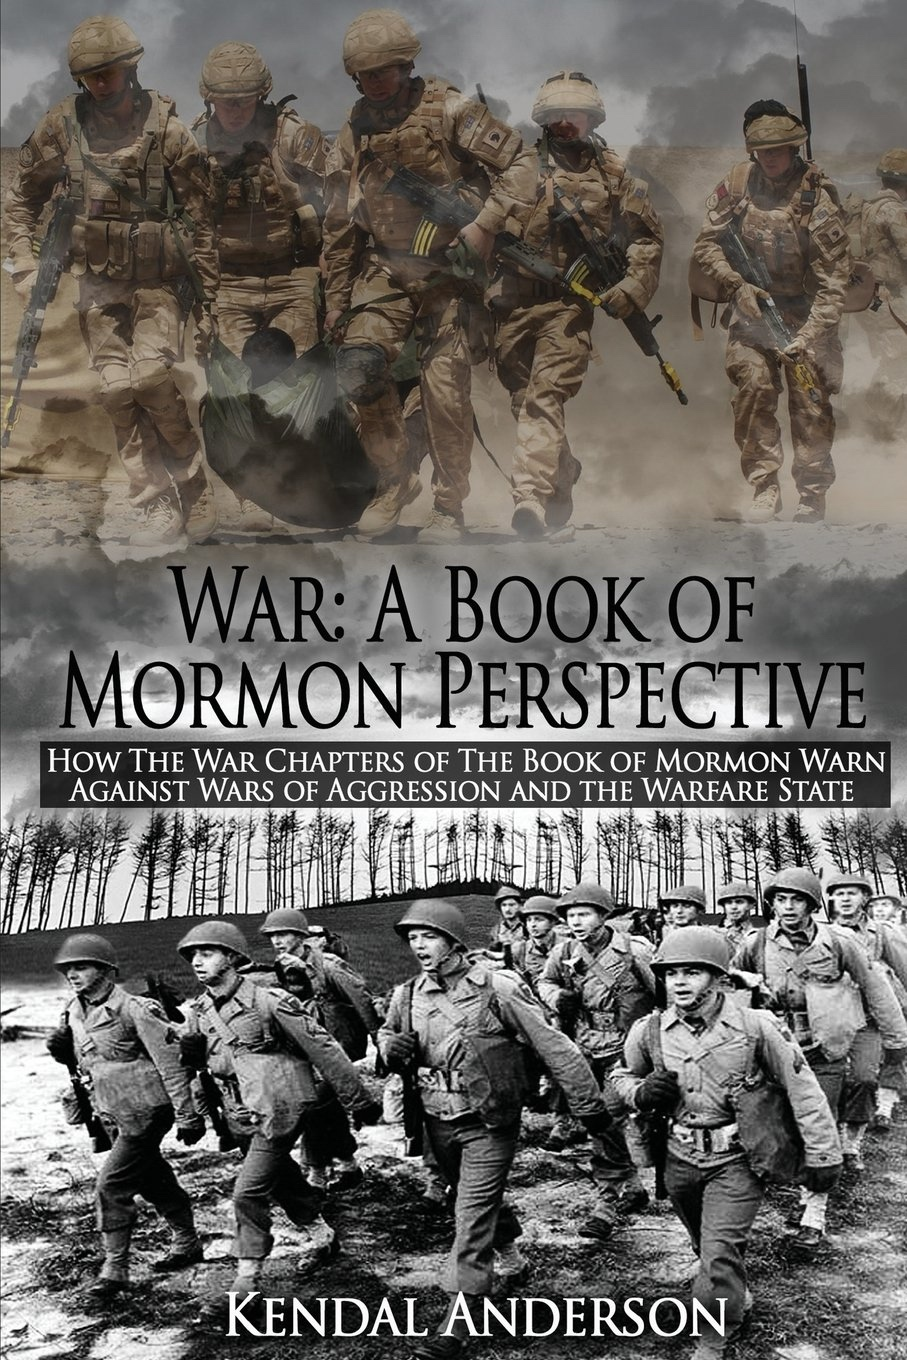 Image for War: A Book of Mormon Perspective: How The War Chapters of the Book of Mormon Warn Against Wars of Aggression and the Warfare State